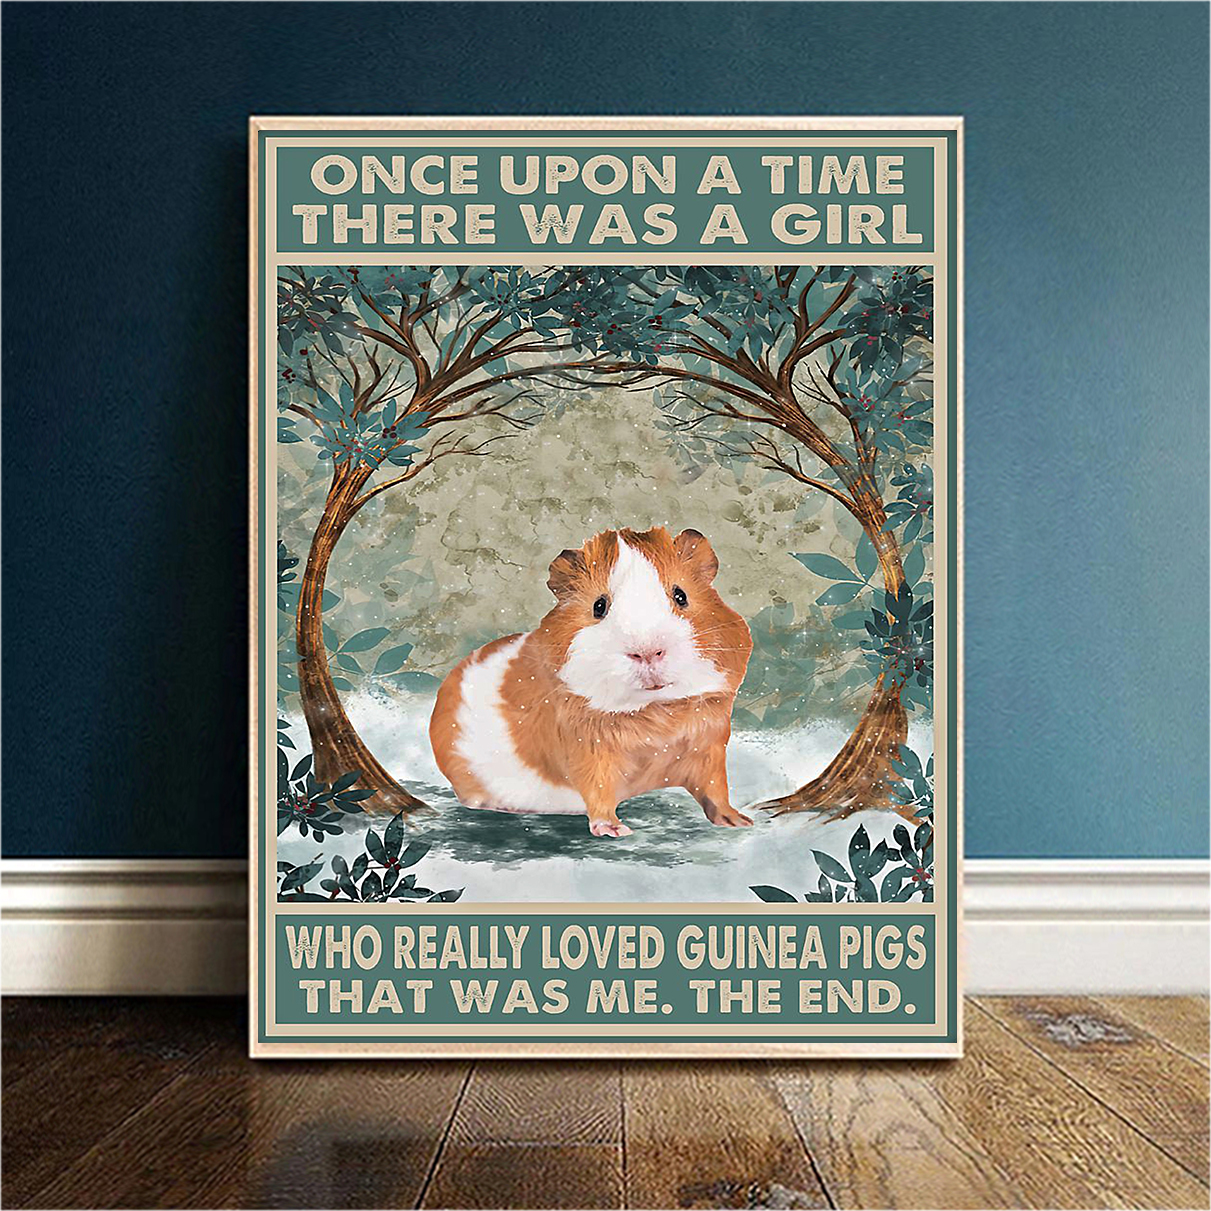 Guinea Pig once upon a time there was a girl who really loved guinea pigs poster A3